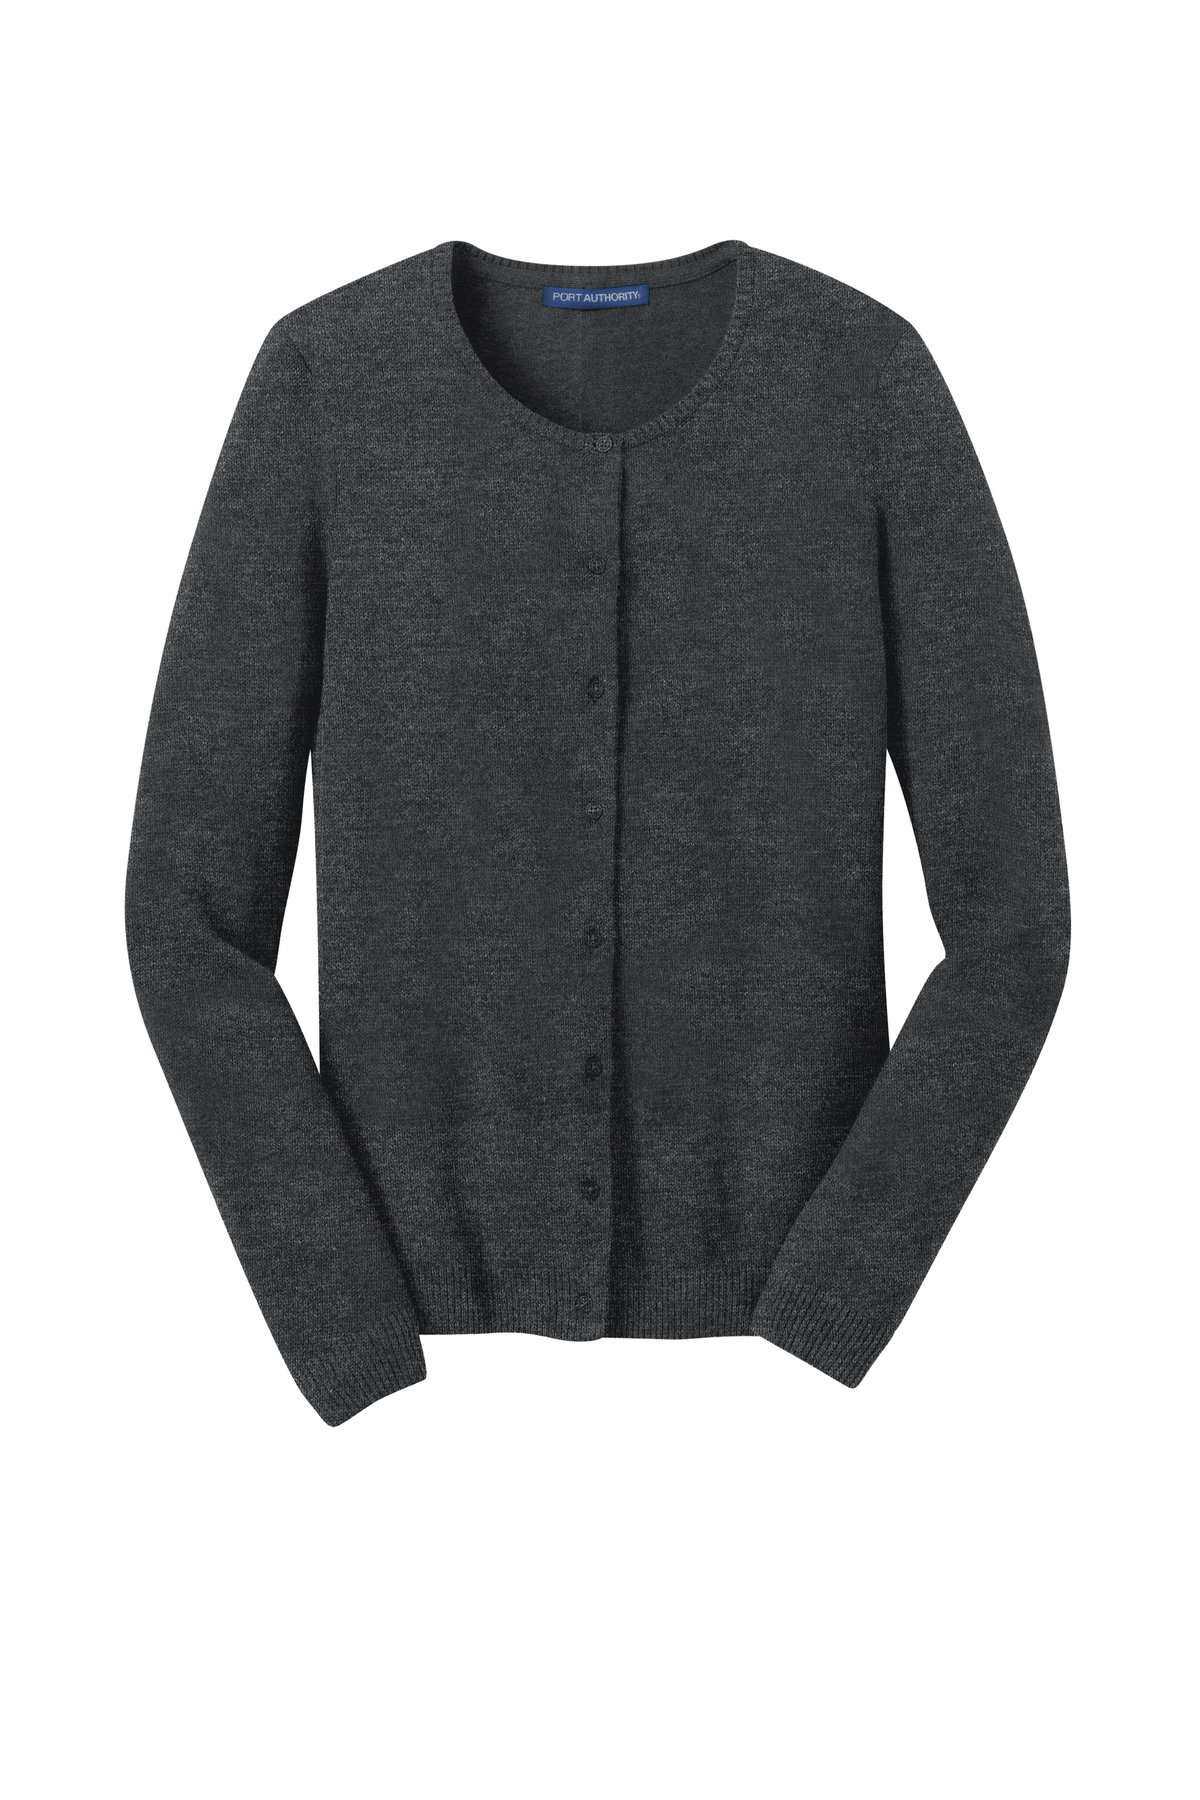 Port Authority® Ladies Cardigan Sweater in Charcoal